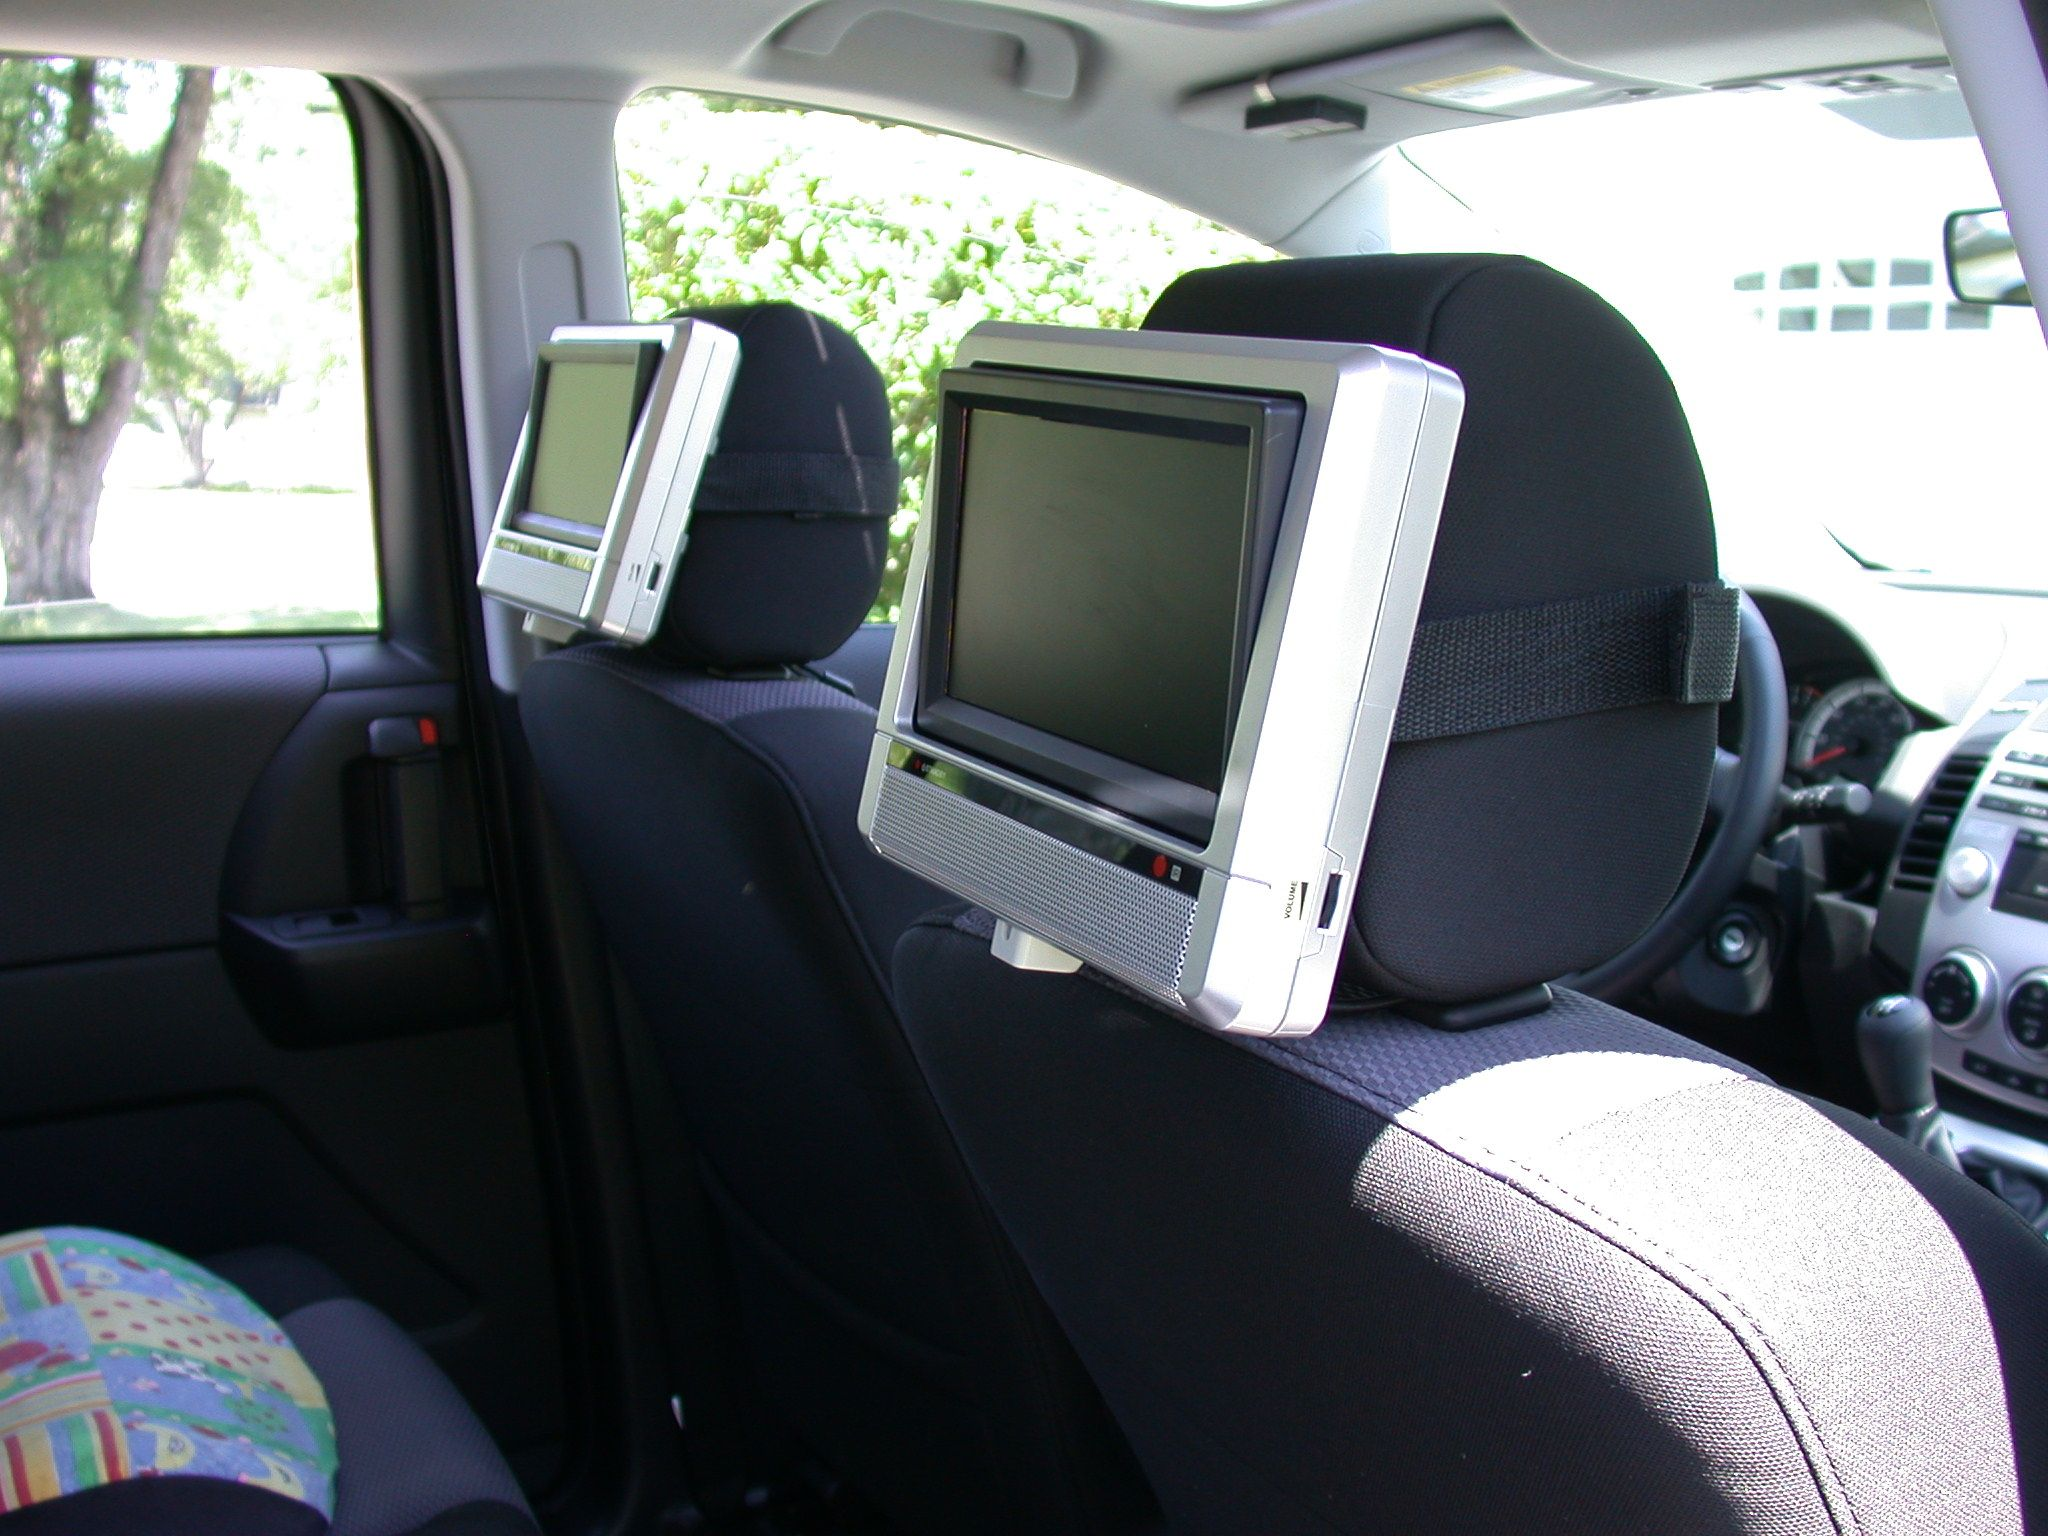 Headrest Monitors Dvd Players Mpvclub View Topic 2004 Mazda Mpv Stereo Audio Wiring Kb 334 Views